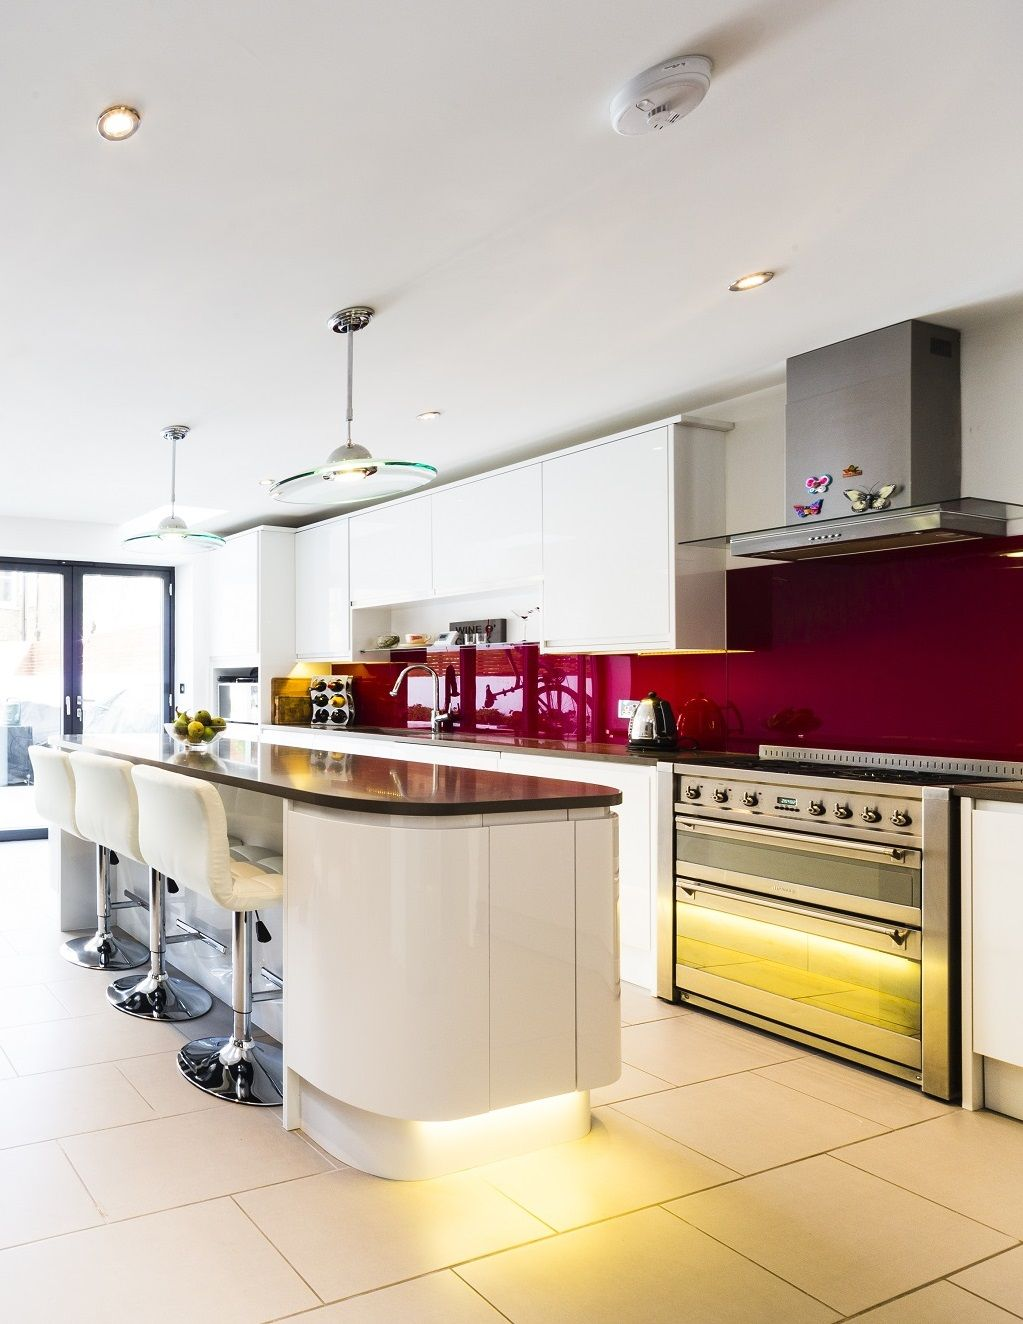 Yellow And Red Kitchen White And Red Kitchen In London Red Splashback White Handleless